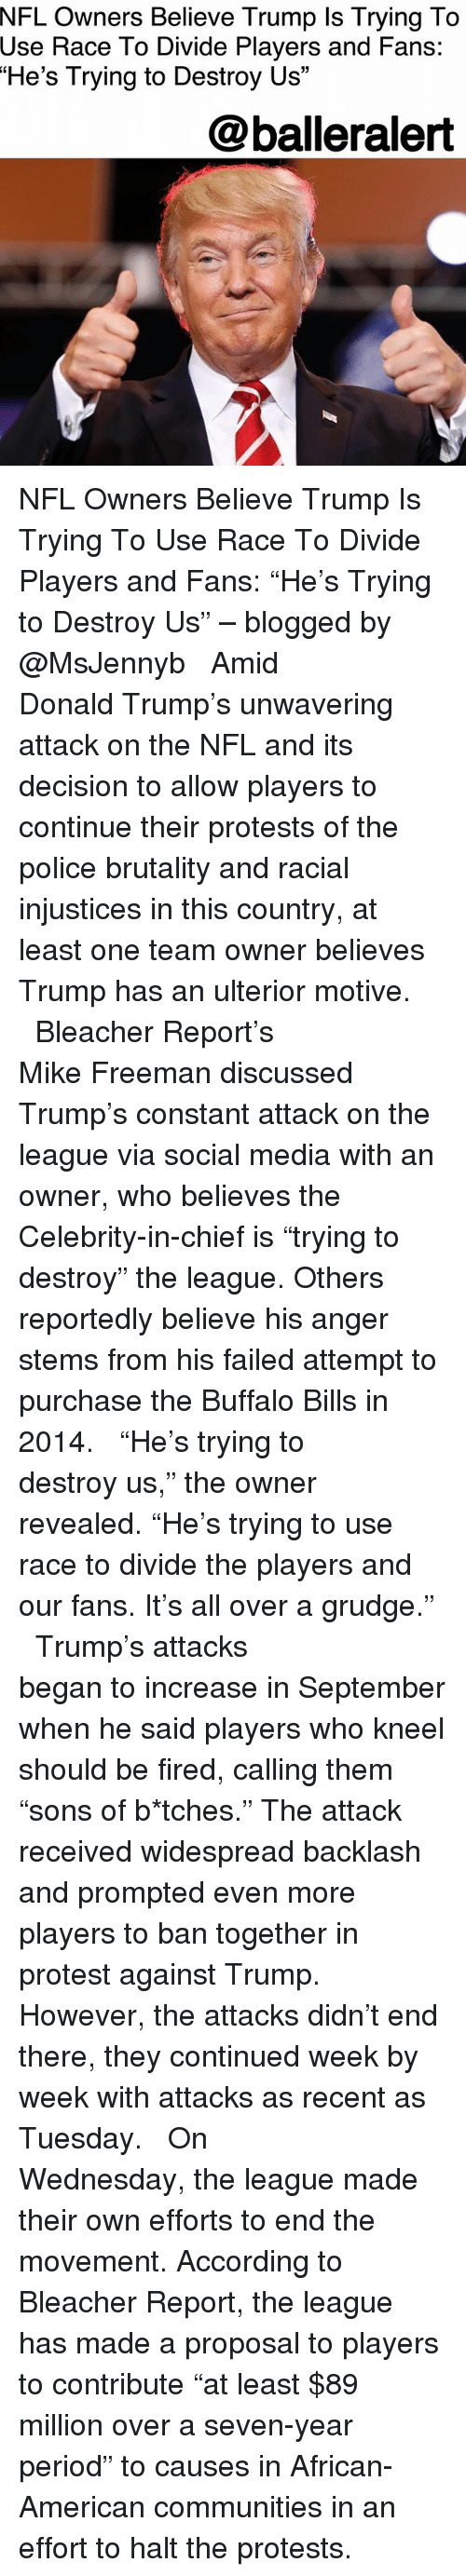 "Buffalo Bills: NFL Owners Believe Trump Is Trying To  Use  Race To Divide Players and Fans:  ""He's Trying to Destroy Us""  @balleralert NFL Owners Believe Trump Is Trying To Use Race To Divide Players and Fans: ""He's Trying to Destroy Us"" – blogged by @MsJennyb ⠀⠀⠀⠀⠀⠀⠀ ⠀⠀⠀⠀⠀⠀⠀ Amid Donald Trump's unwavering attack on the NFL and its decision to allow players to continue their protests of the police brutality and racial injustices in this country, at least one team owner believes Trump has an ulterior motive. ⠀⠀⠀⠀⠀⠀⠀ ⠀⠀⠀⠀⠀⠀⠀ Bleacher Report's Mike Freeman discussed Trump's constant attack on the league via social media with an owner, who believes the Celebrity-in-chief is ""trying to destroy"" the league. Others reportedly believe his anger stems from his failed attempt to purchase the Buffalo Bills in 2014. ⠀⠀⠀⠀⠀⠀⠀ ⠀⠀⠀⠀⠀⠀⠀ ""He's trying to destroy us,"" the owner revealed. ""He's trying to use race to divide the players and our fans. It's all over a grudge."" ⠀⠀⠀⠀⠀⠀⠀ ⠀⠀⠀⠀⠀⠀⠀ Trump's attacks began to increase in September when he said players who kneel should be fired, calling them ""sons of b*tches."" The attack received widespread backlash and prompted even more players to ban together in protest against Trump. However, the attacks didn't end there, they continued week by week with attacks as recent as Tuesday. ⠀⠀⠀⠀⠀⠀⠀ ⠀⠀⠀⠀⠀⠀⠀ On Wednesday, the league made their own efforts to end the movement. According to Bleacher Report, the league has made a proposal to players to contribute ""at least $89 million over a seven-year period"" to causes in African-American communities in an effort to halt the protests."